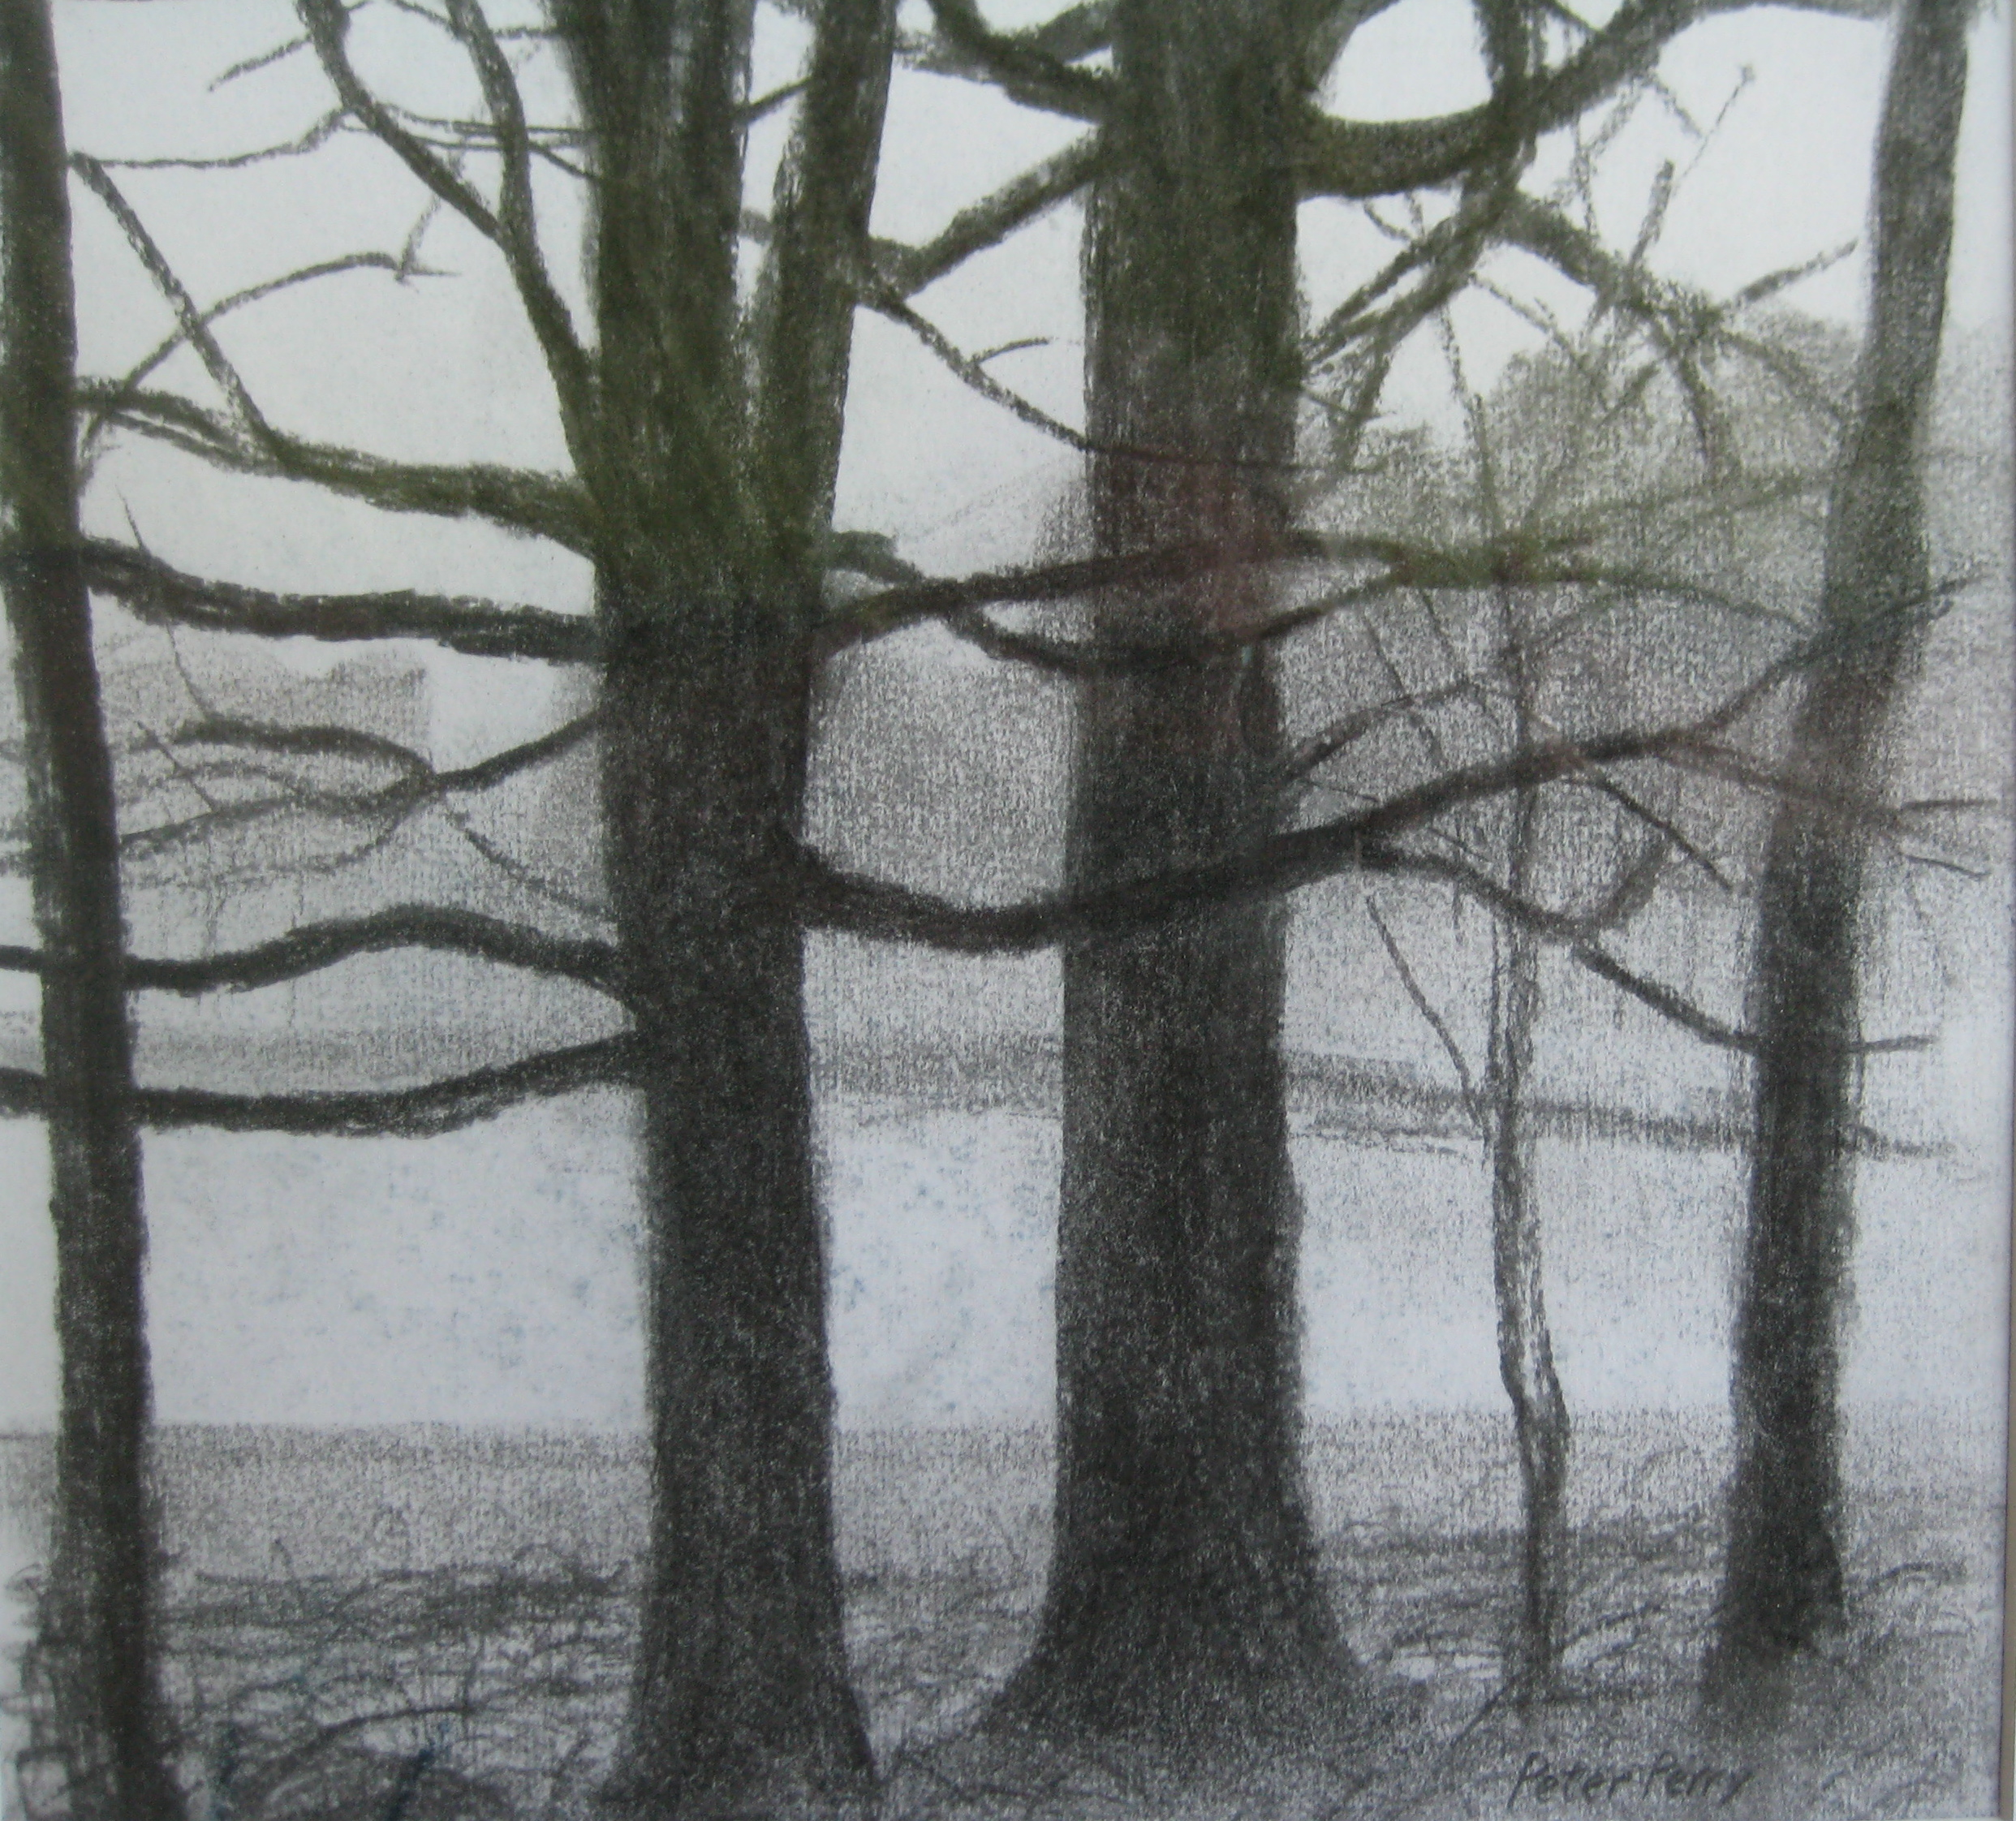 "TREES, WINTER  Approx 12X12"" (30X30cm)  Charcoal on paper   Sold"